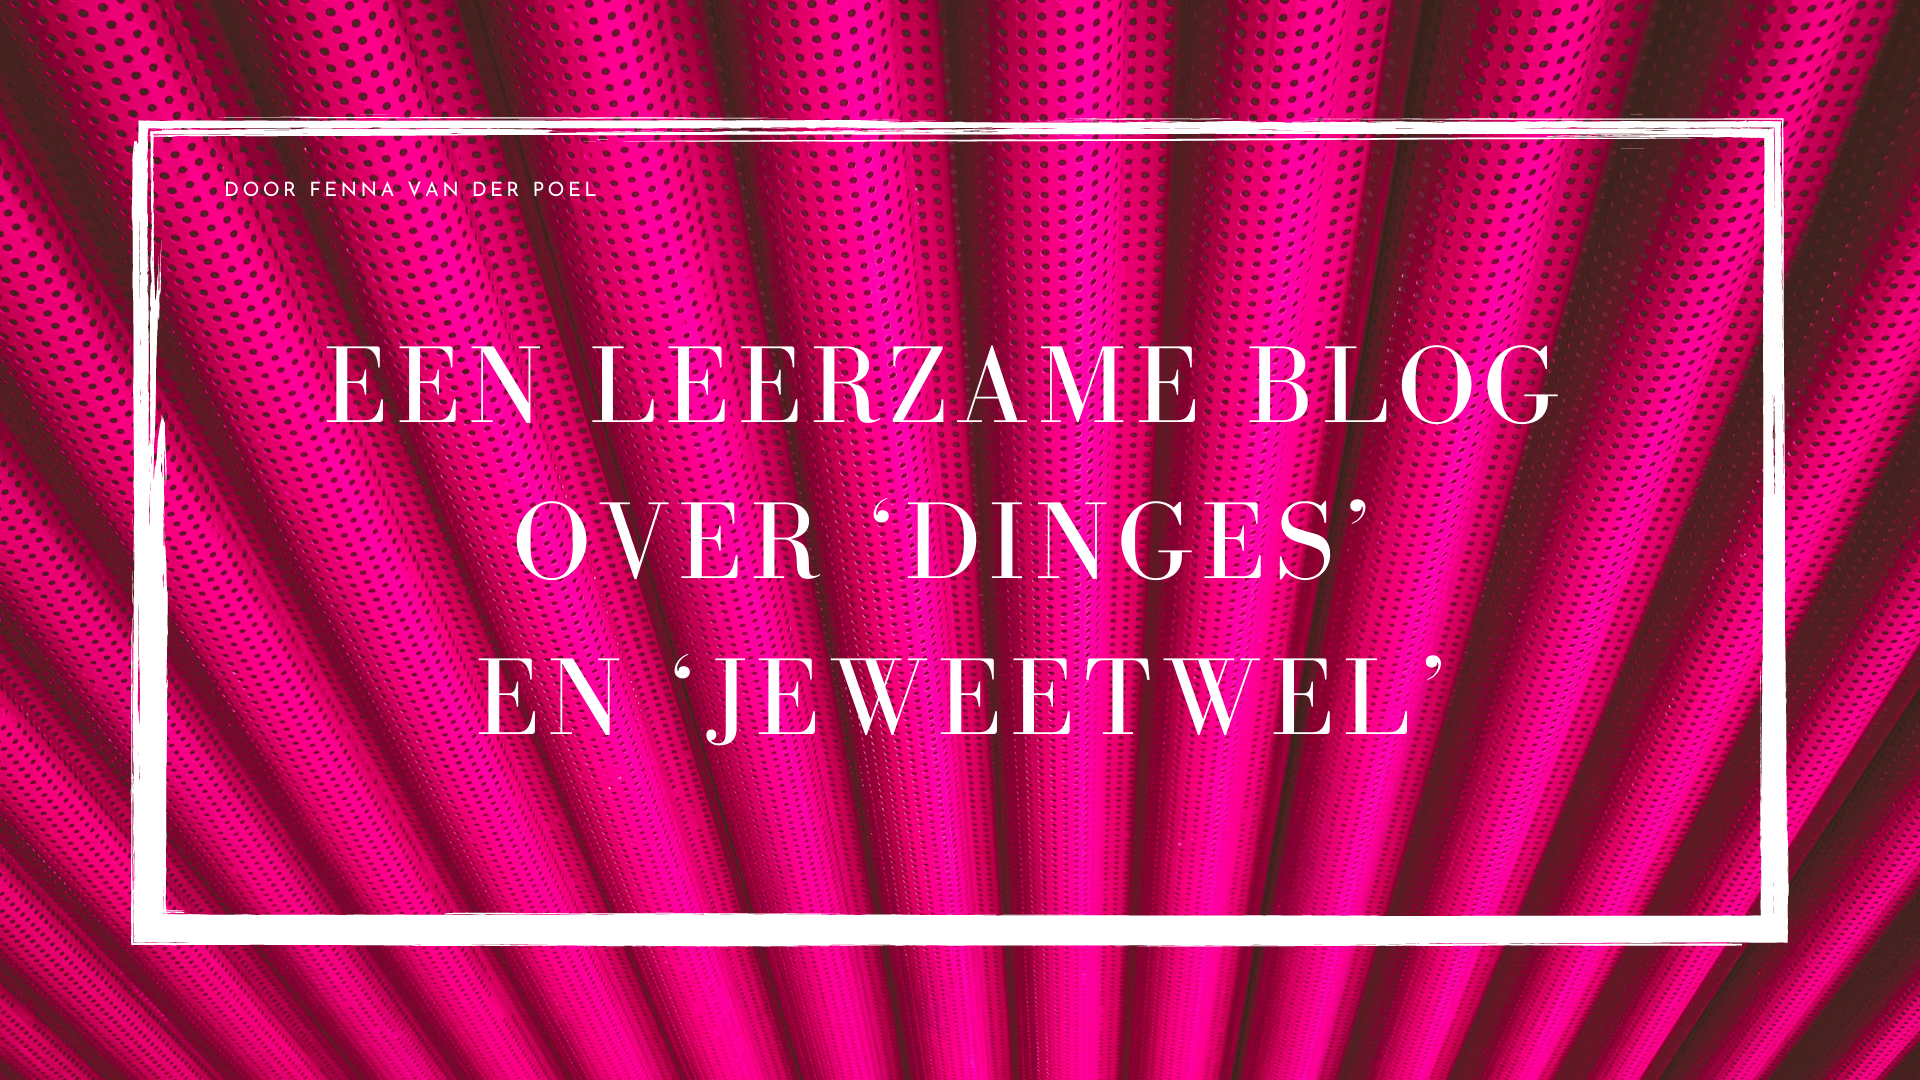 Een leerzame blog over 'dinges' en 'jeweetwel': Pantoniemen